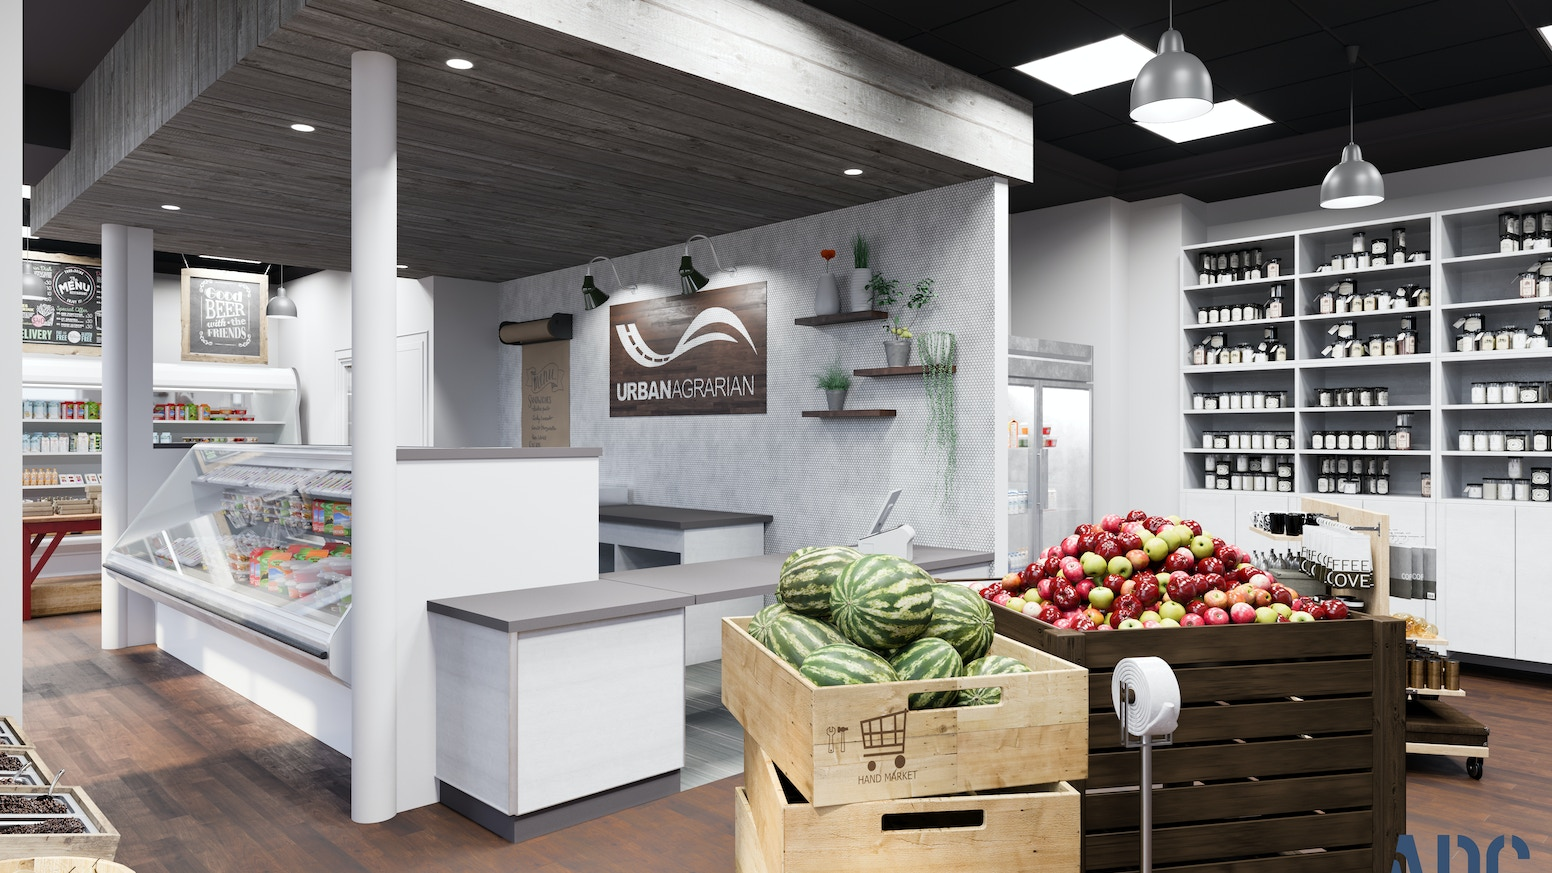 Urban Agrarian A New Grocery For Local Food By Urban Agrarian